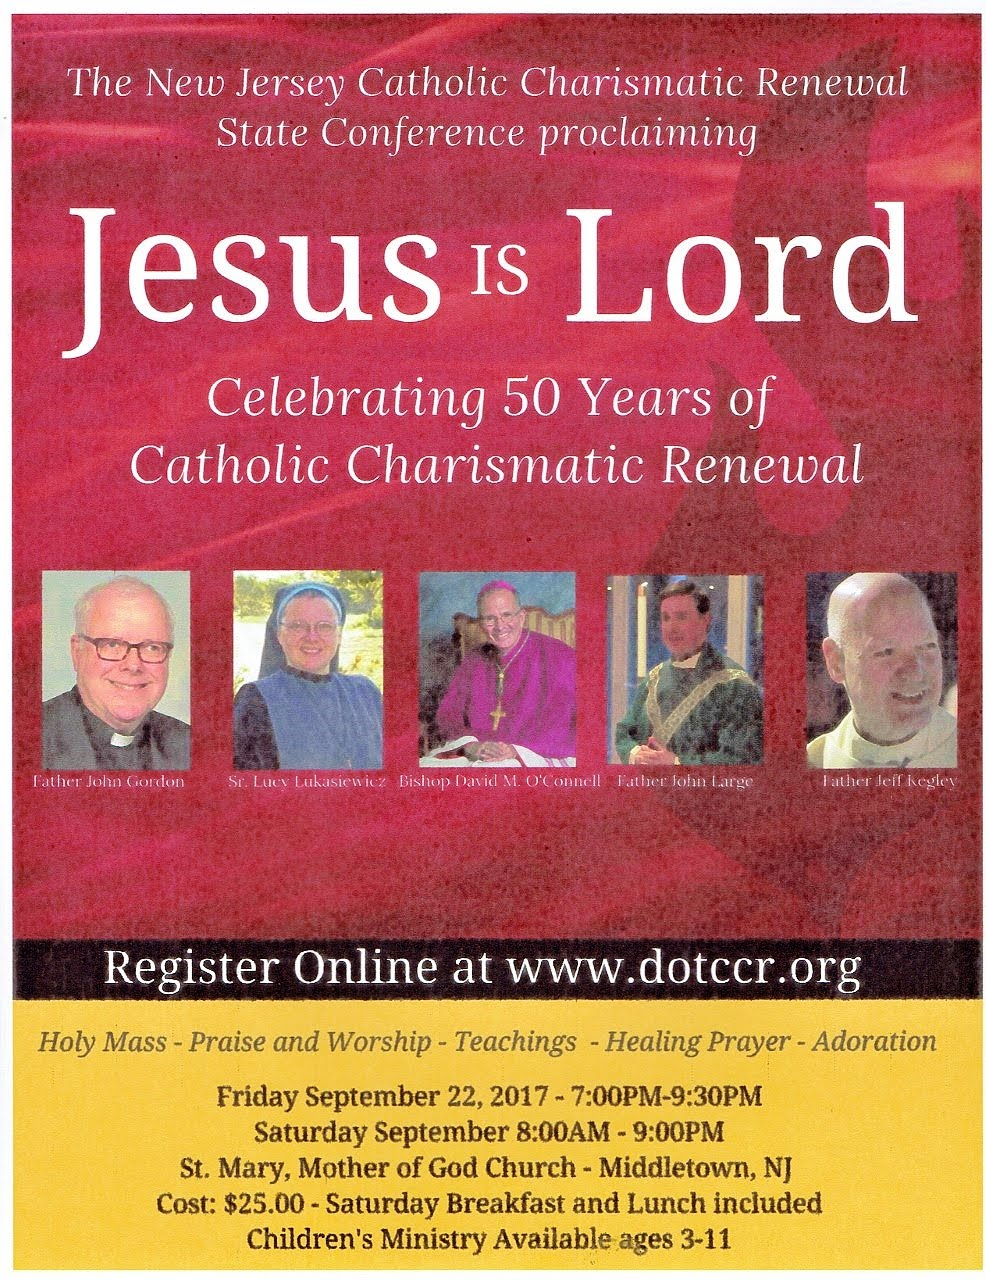 New Jersey Catholic Charismatic Renewal State Conference (September 22-23, 2017)